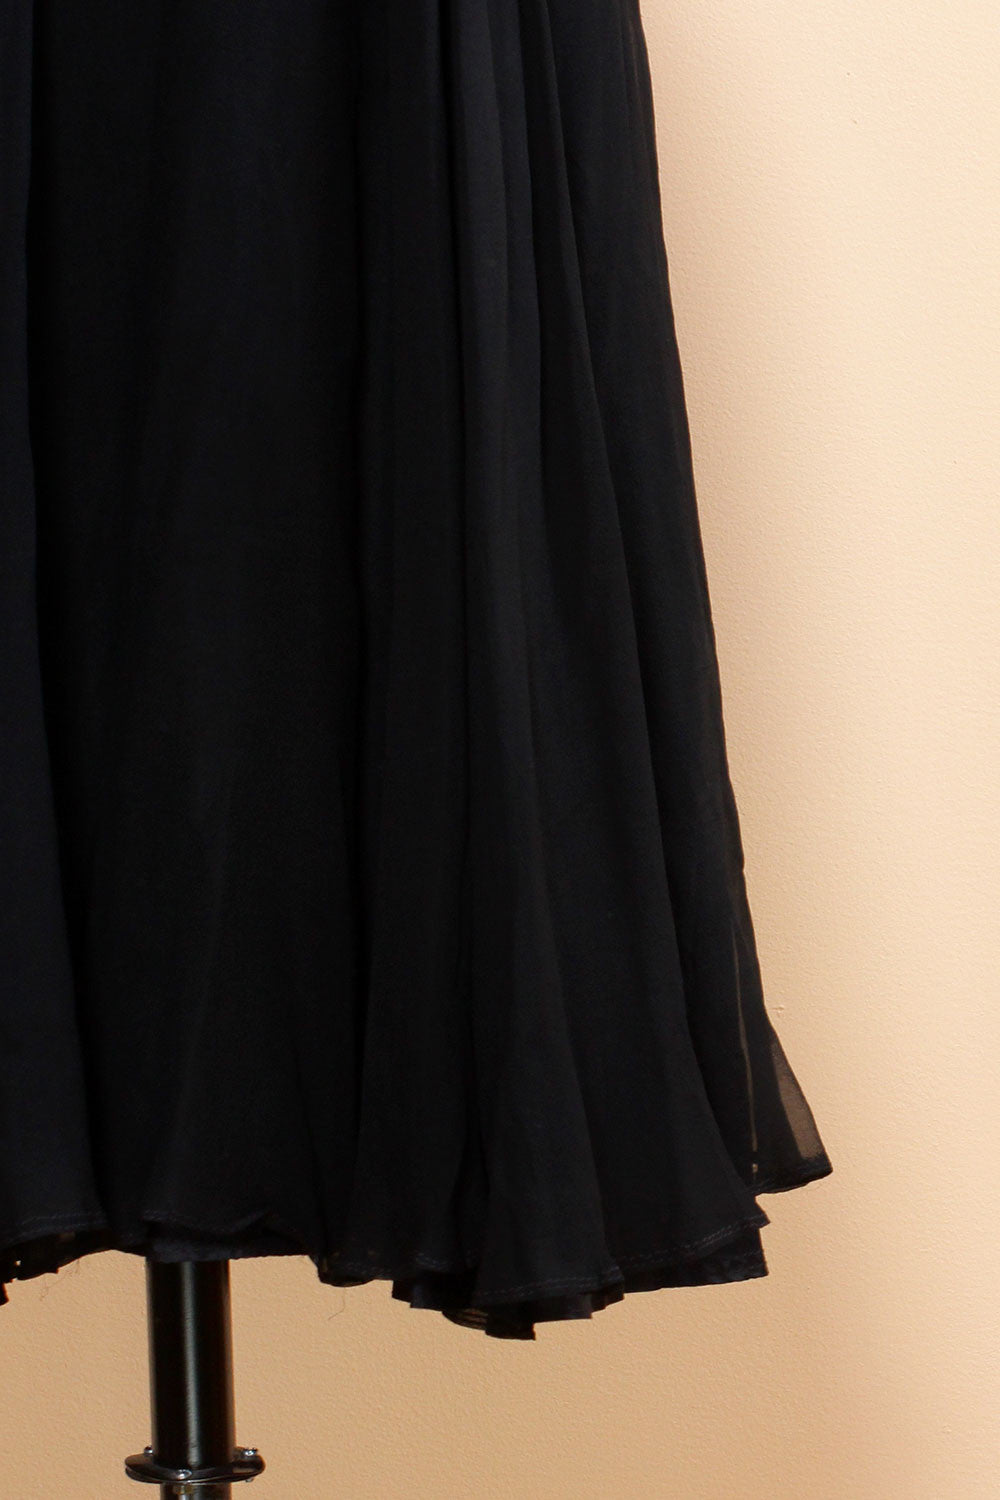 Noir Chiffon Flutter Dress S/M